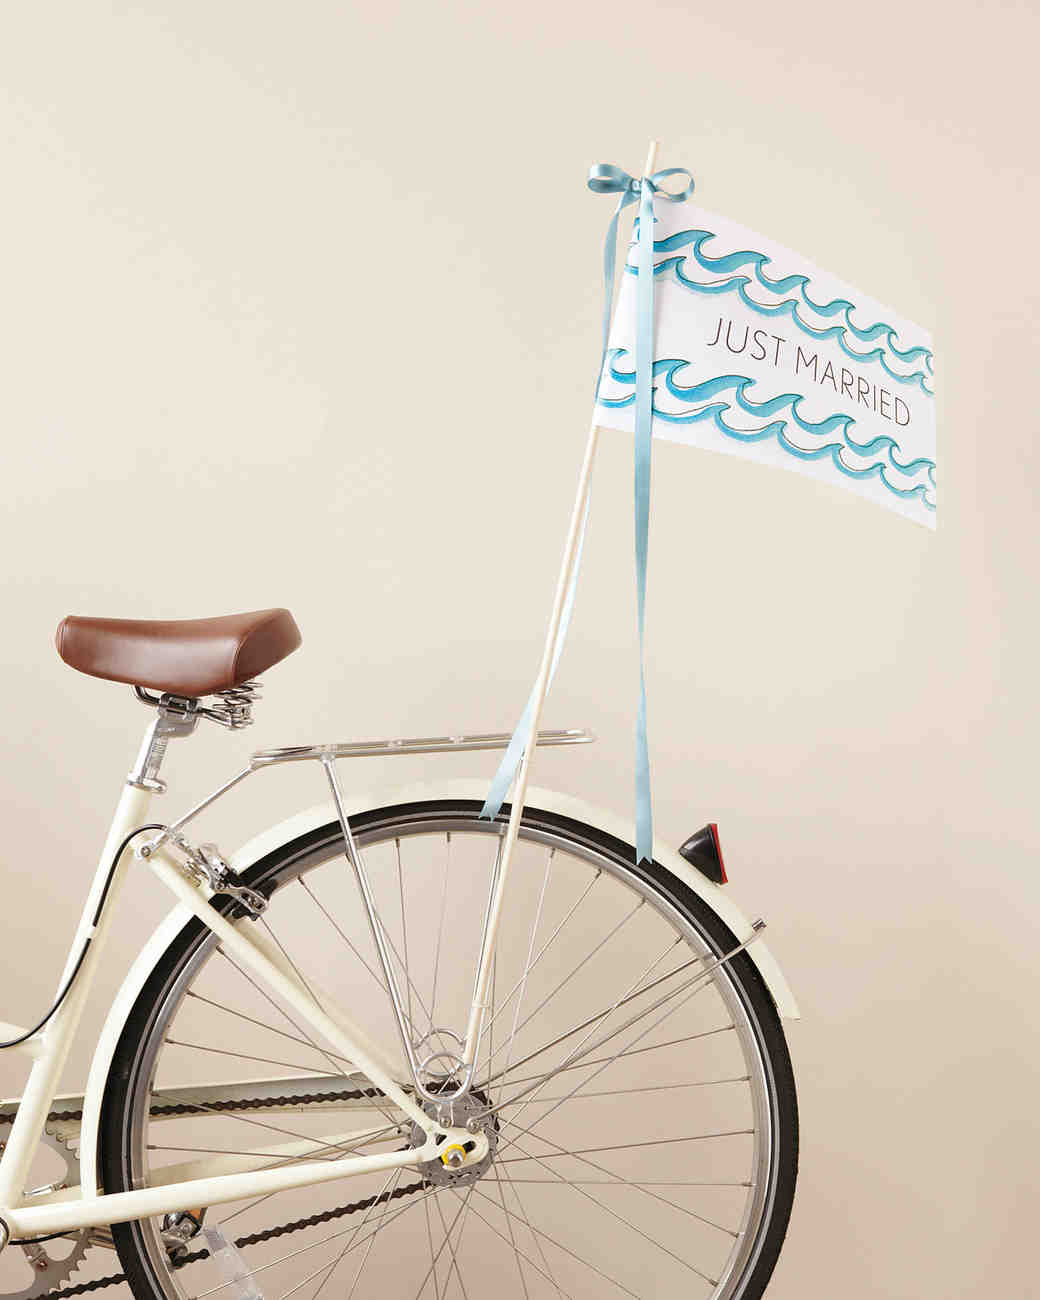 Bike Flag Images - Reverse Search